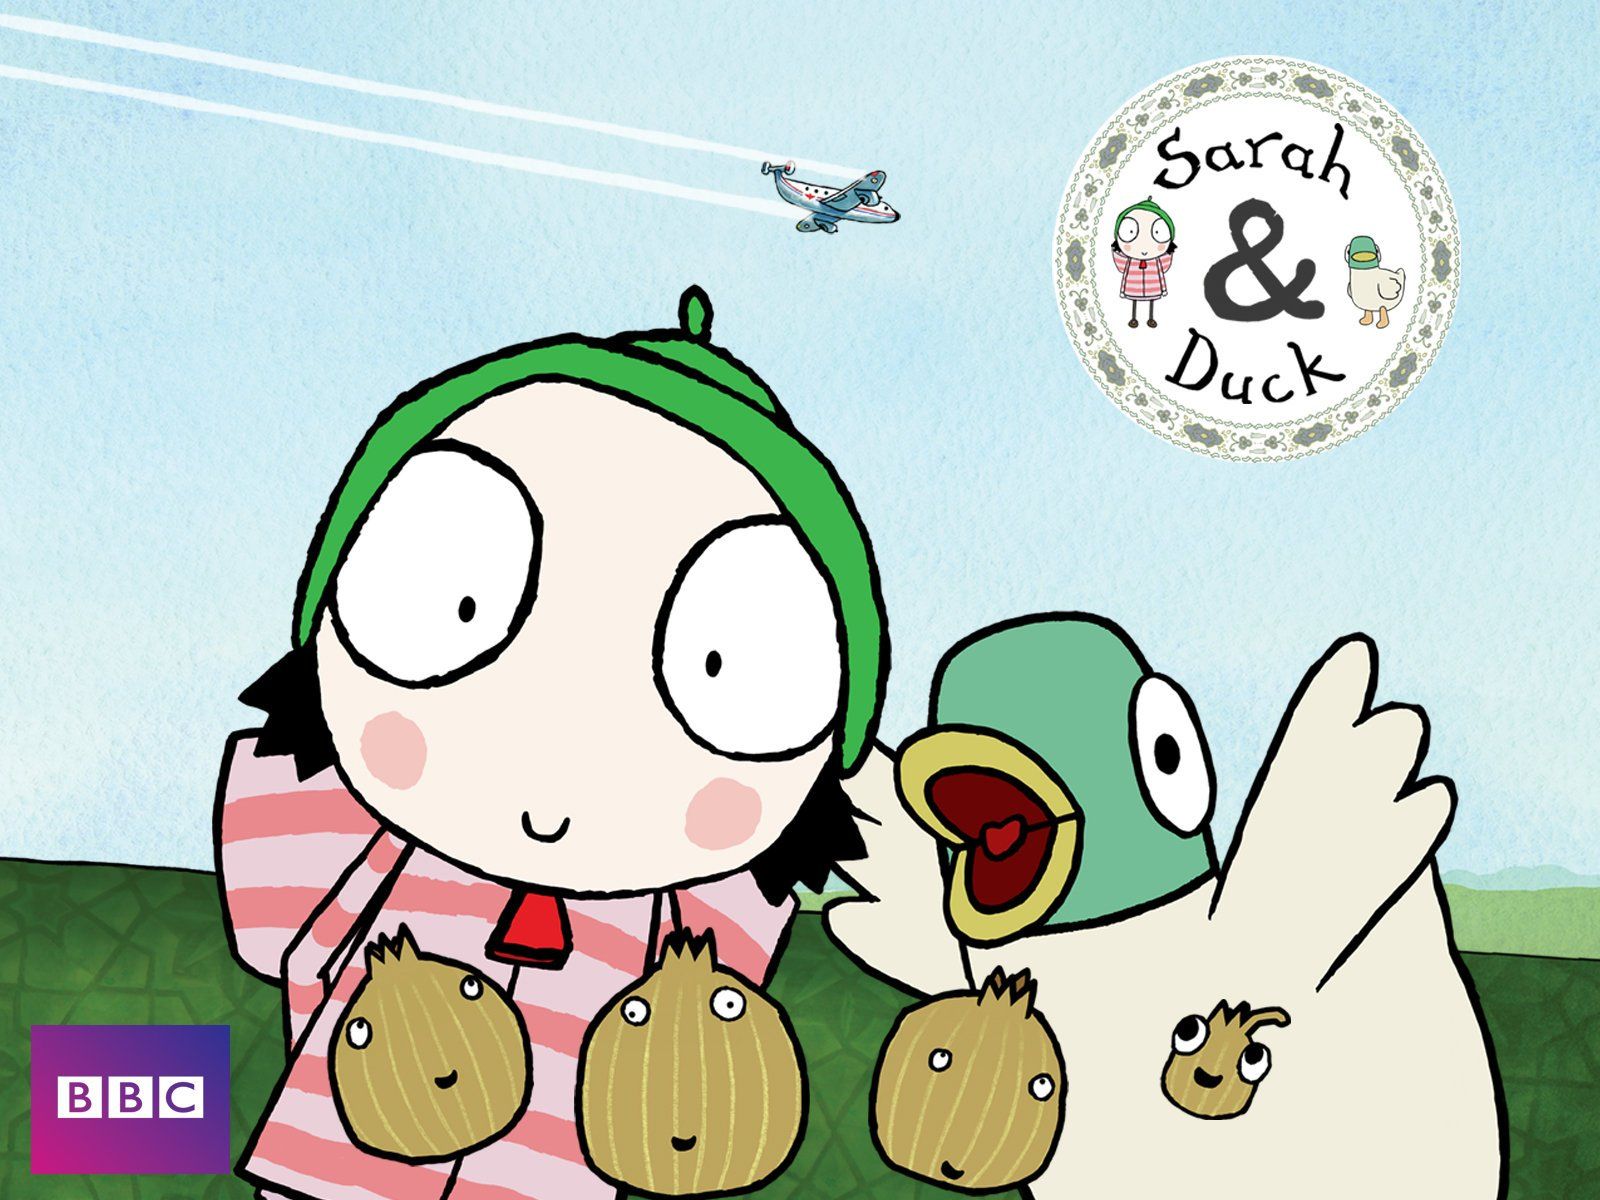 Amazon.com: Sarah & Duck Volume 1: Tim O\'Sullivan, Jamie Badminton ...